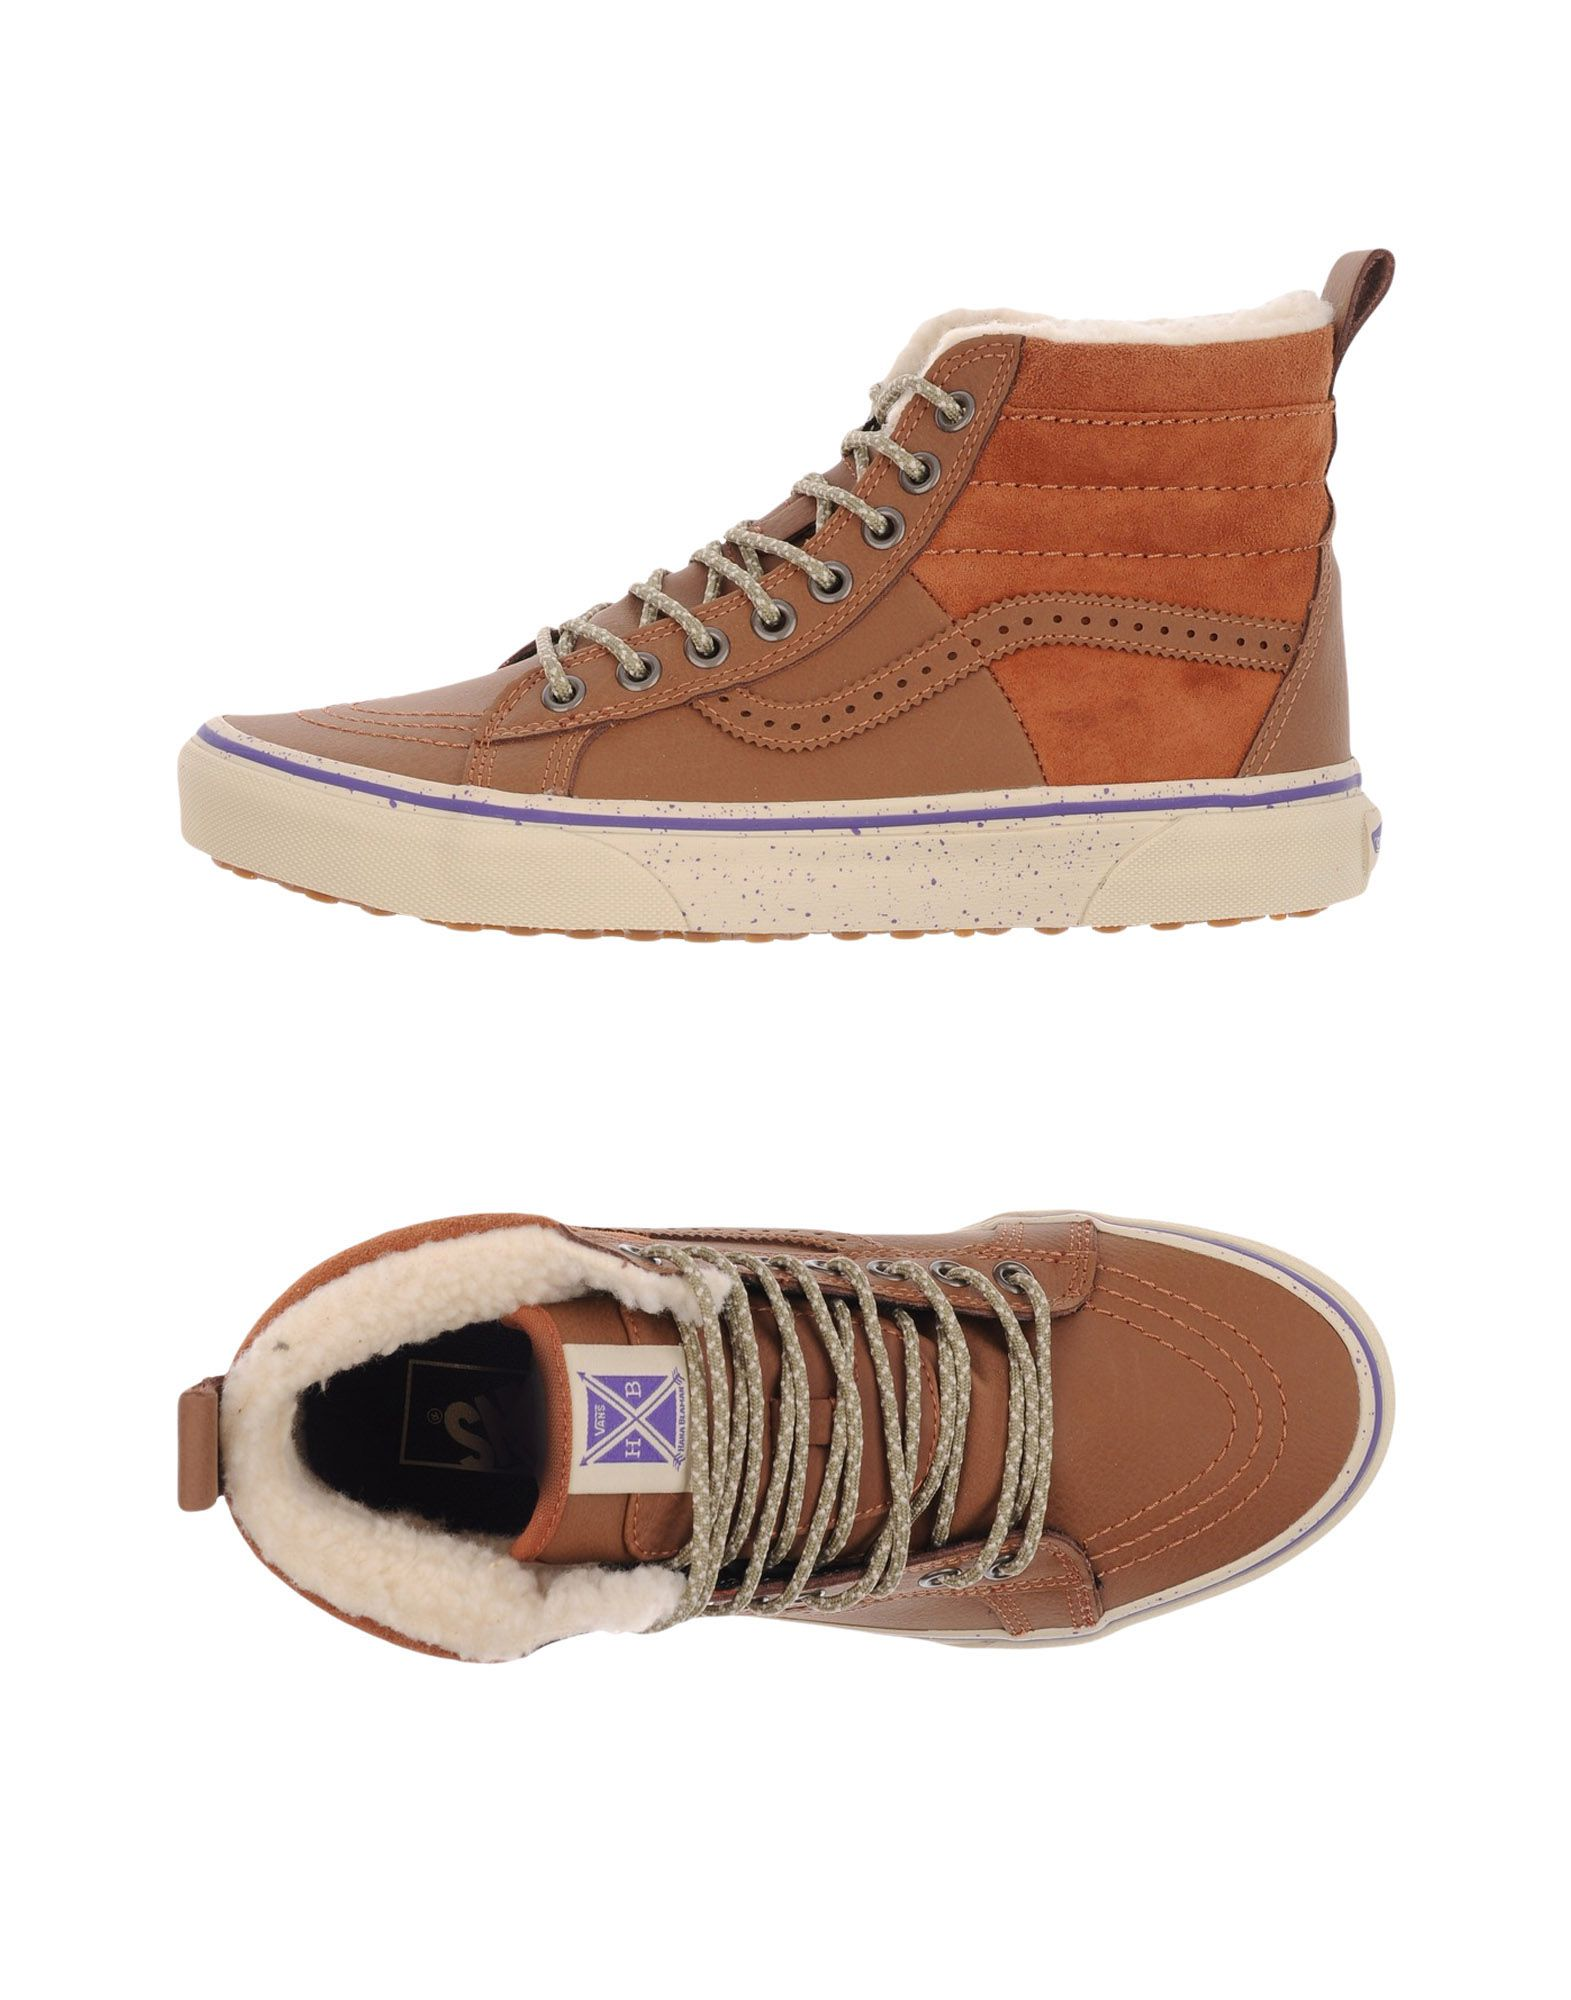 Vans Sneakers United - Women Vans Sneakers online on  United Sneakers Kingdom - 11235694VB 0f60d6